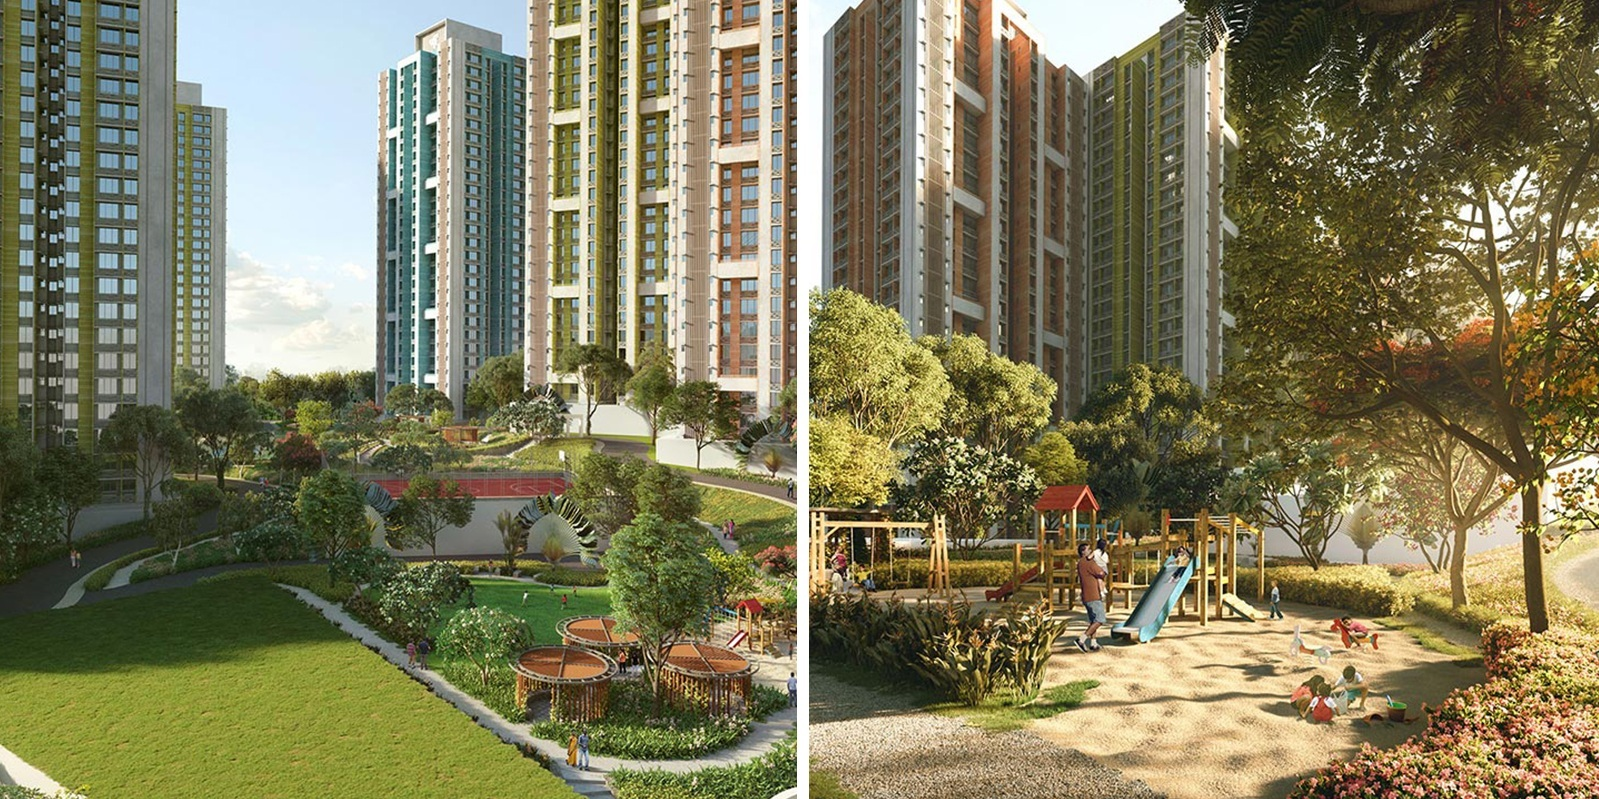 wadhwa wise city south block phase 1 b4 wing f3 amenities features7